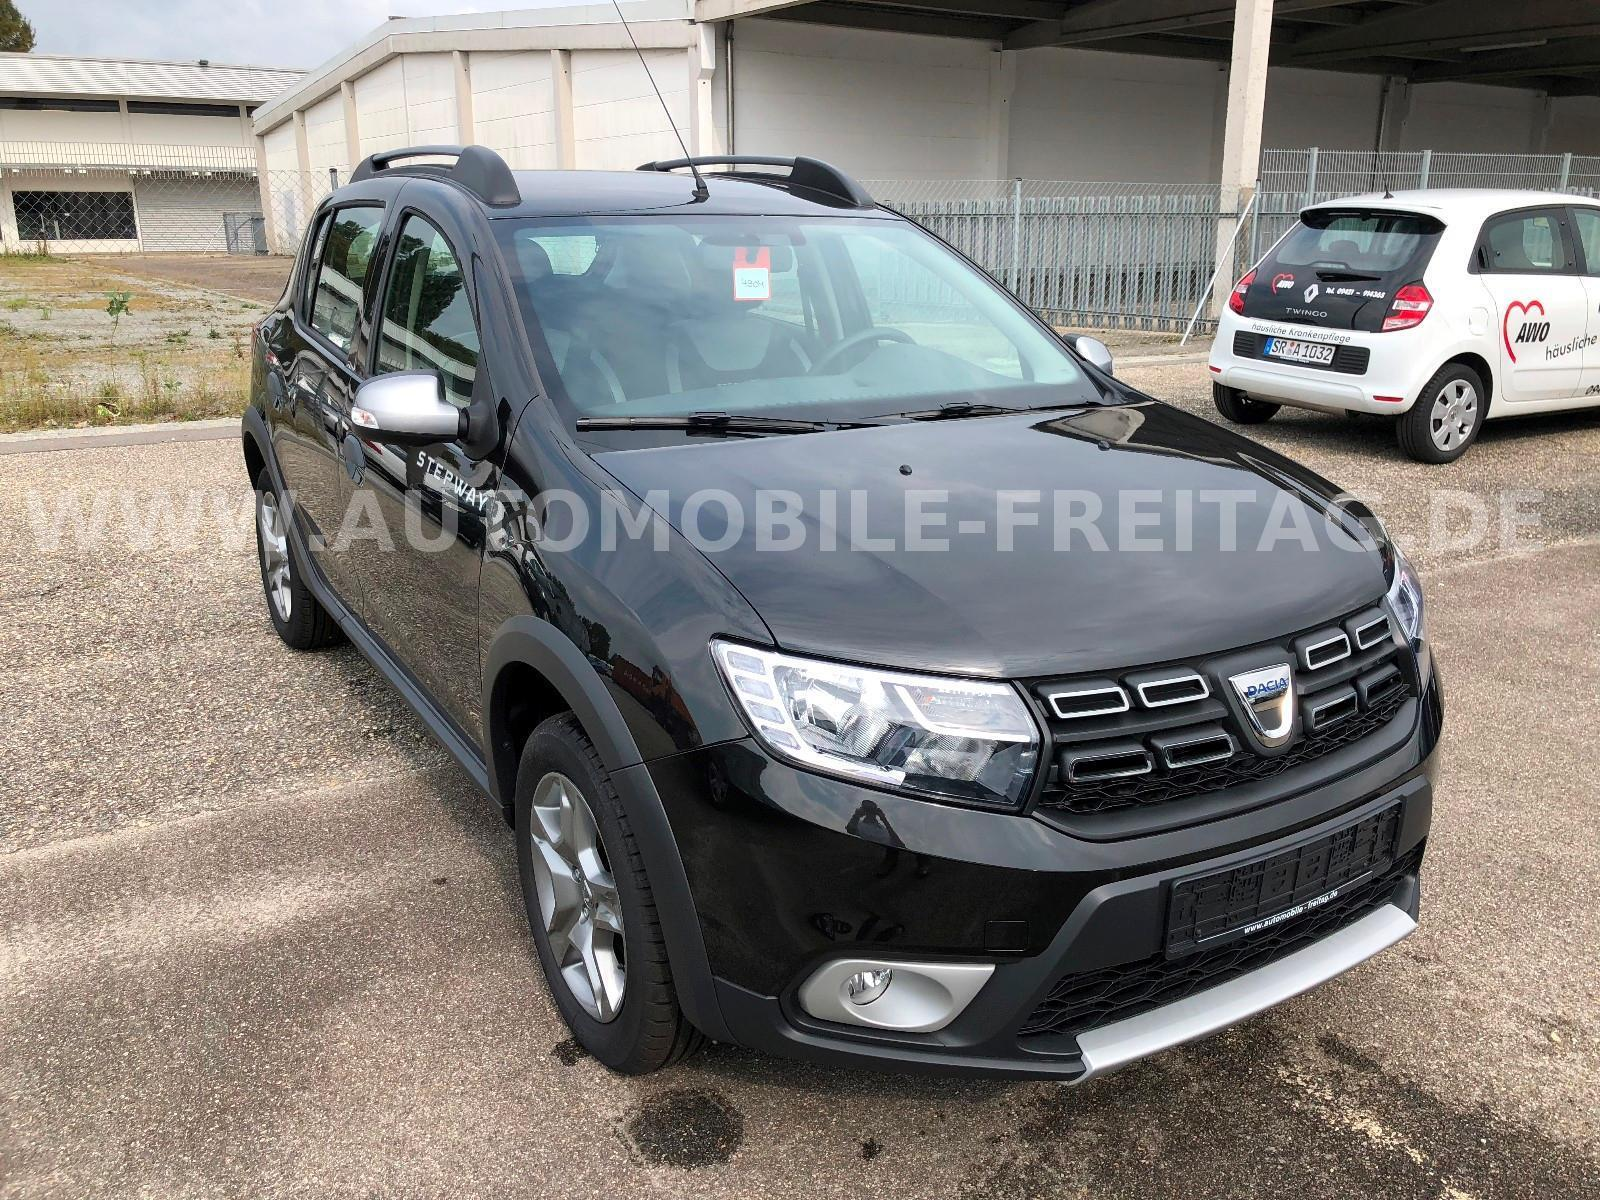 dacia sandero stepway tce 90 eu fahrzeug autohaus freitag. Black Bedroom Furniture Sets. Home Design Ideas